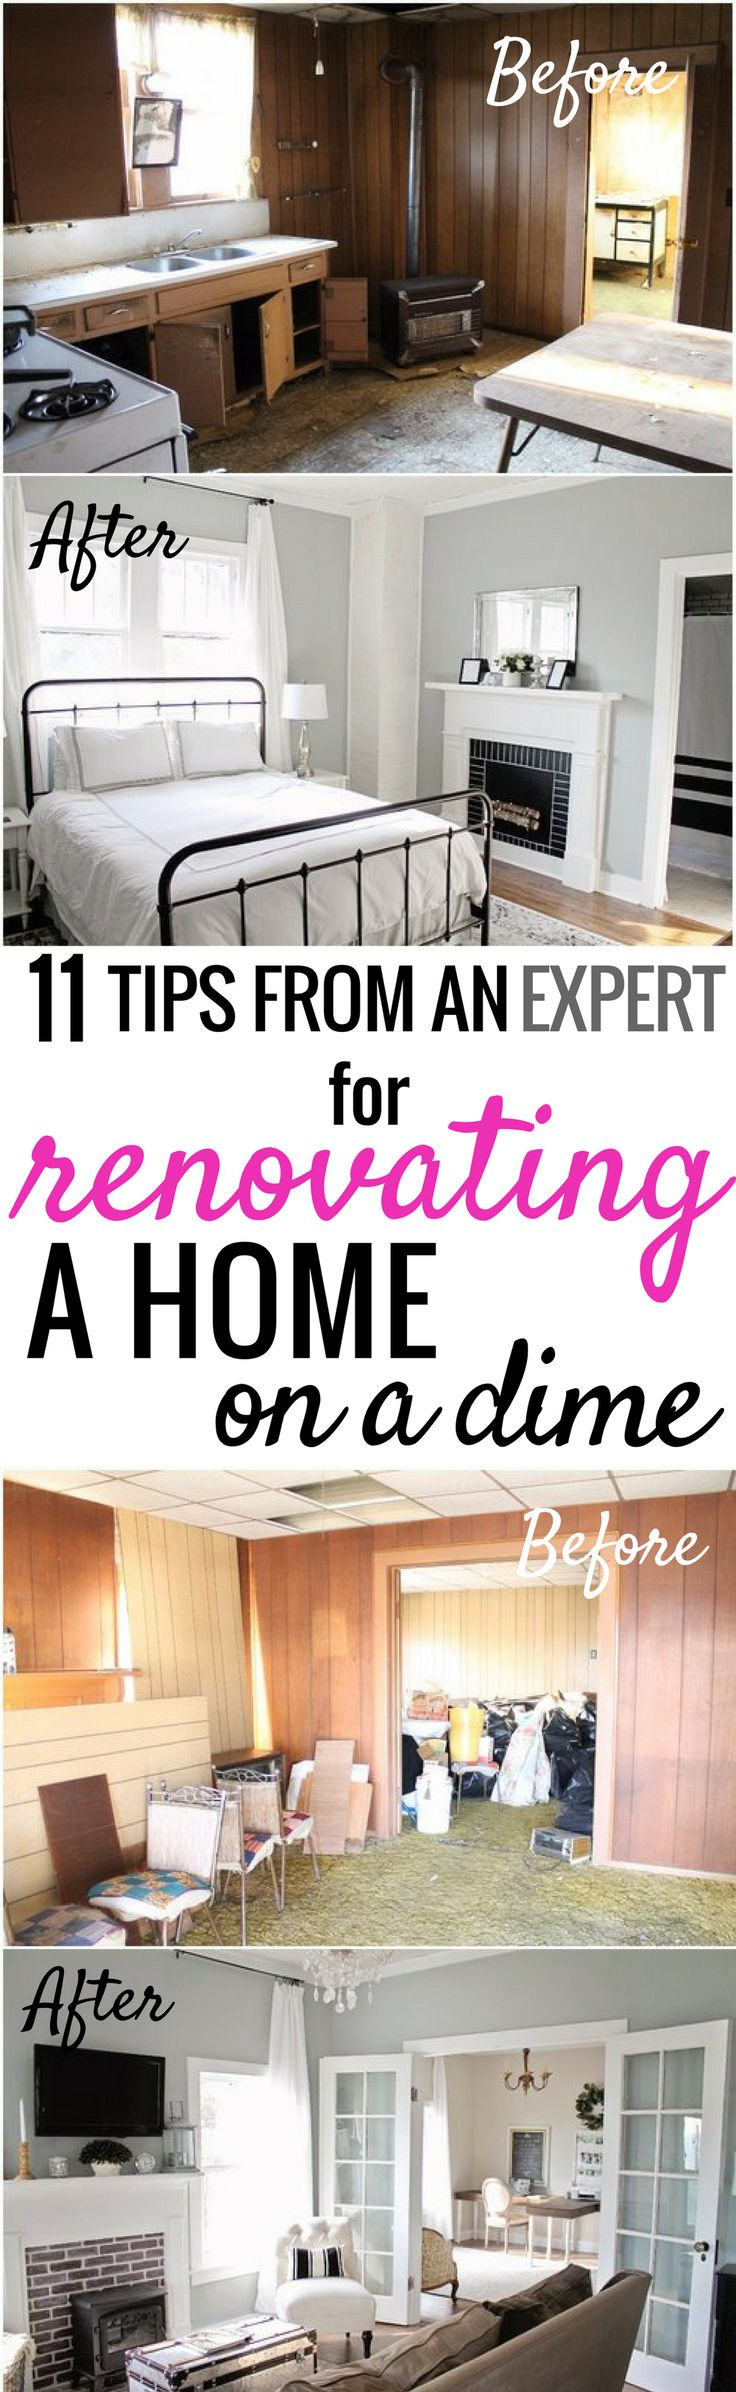 How she renovated and decorated her home